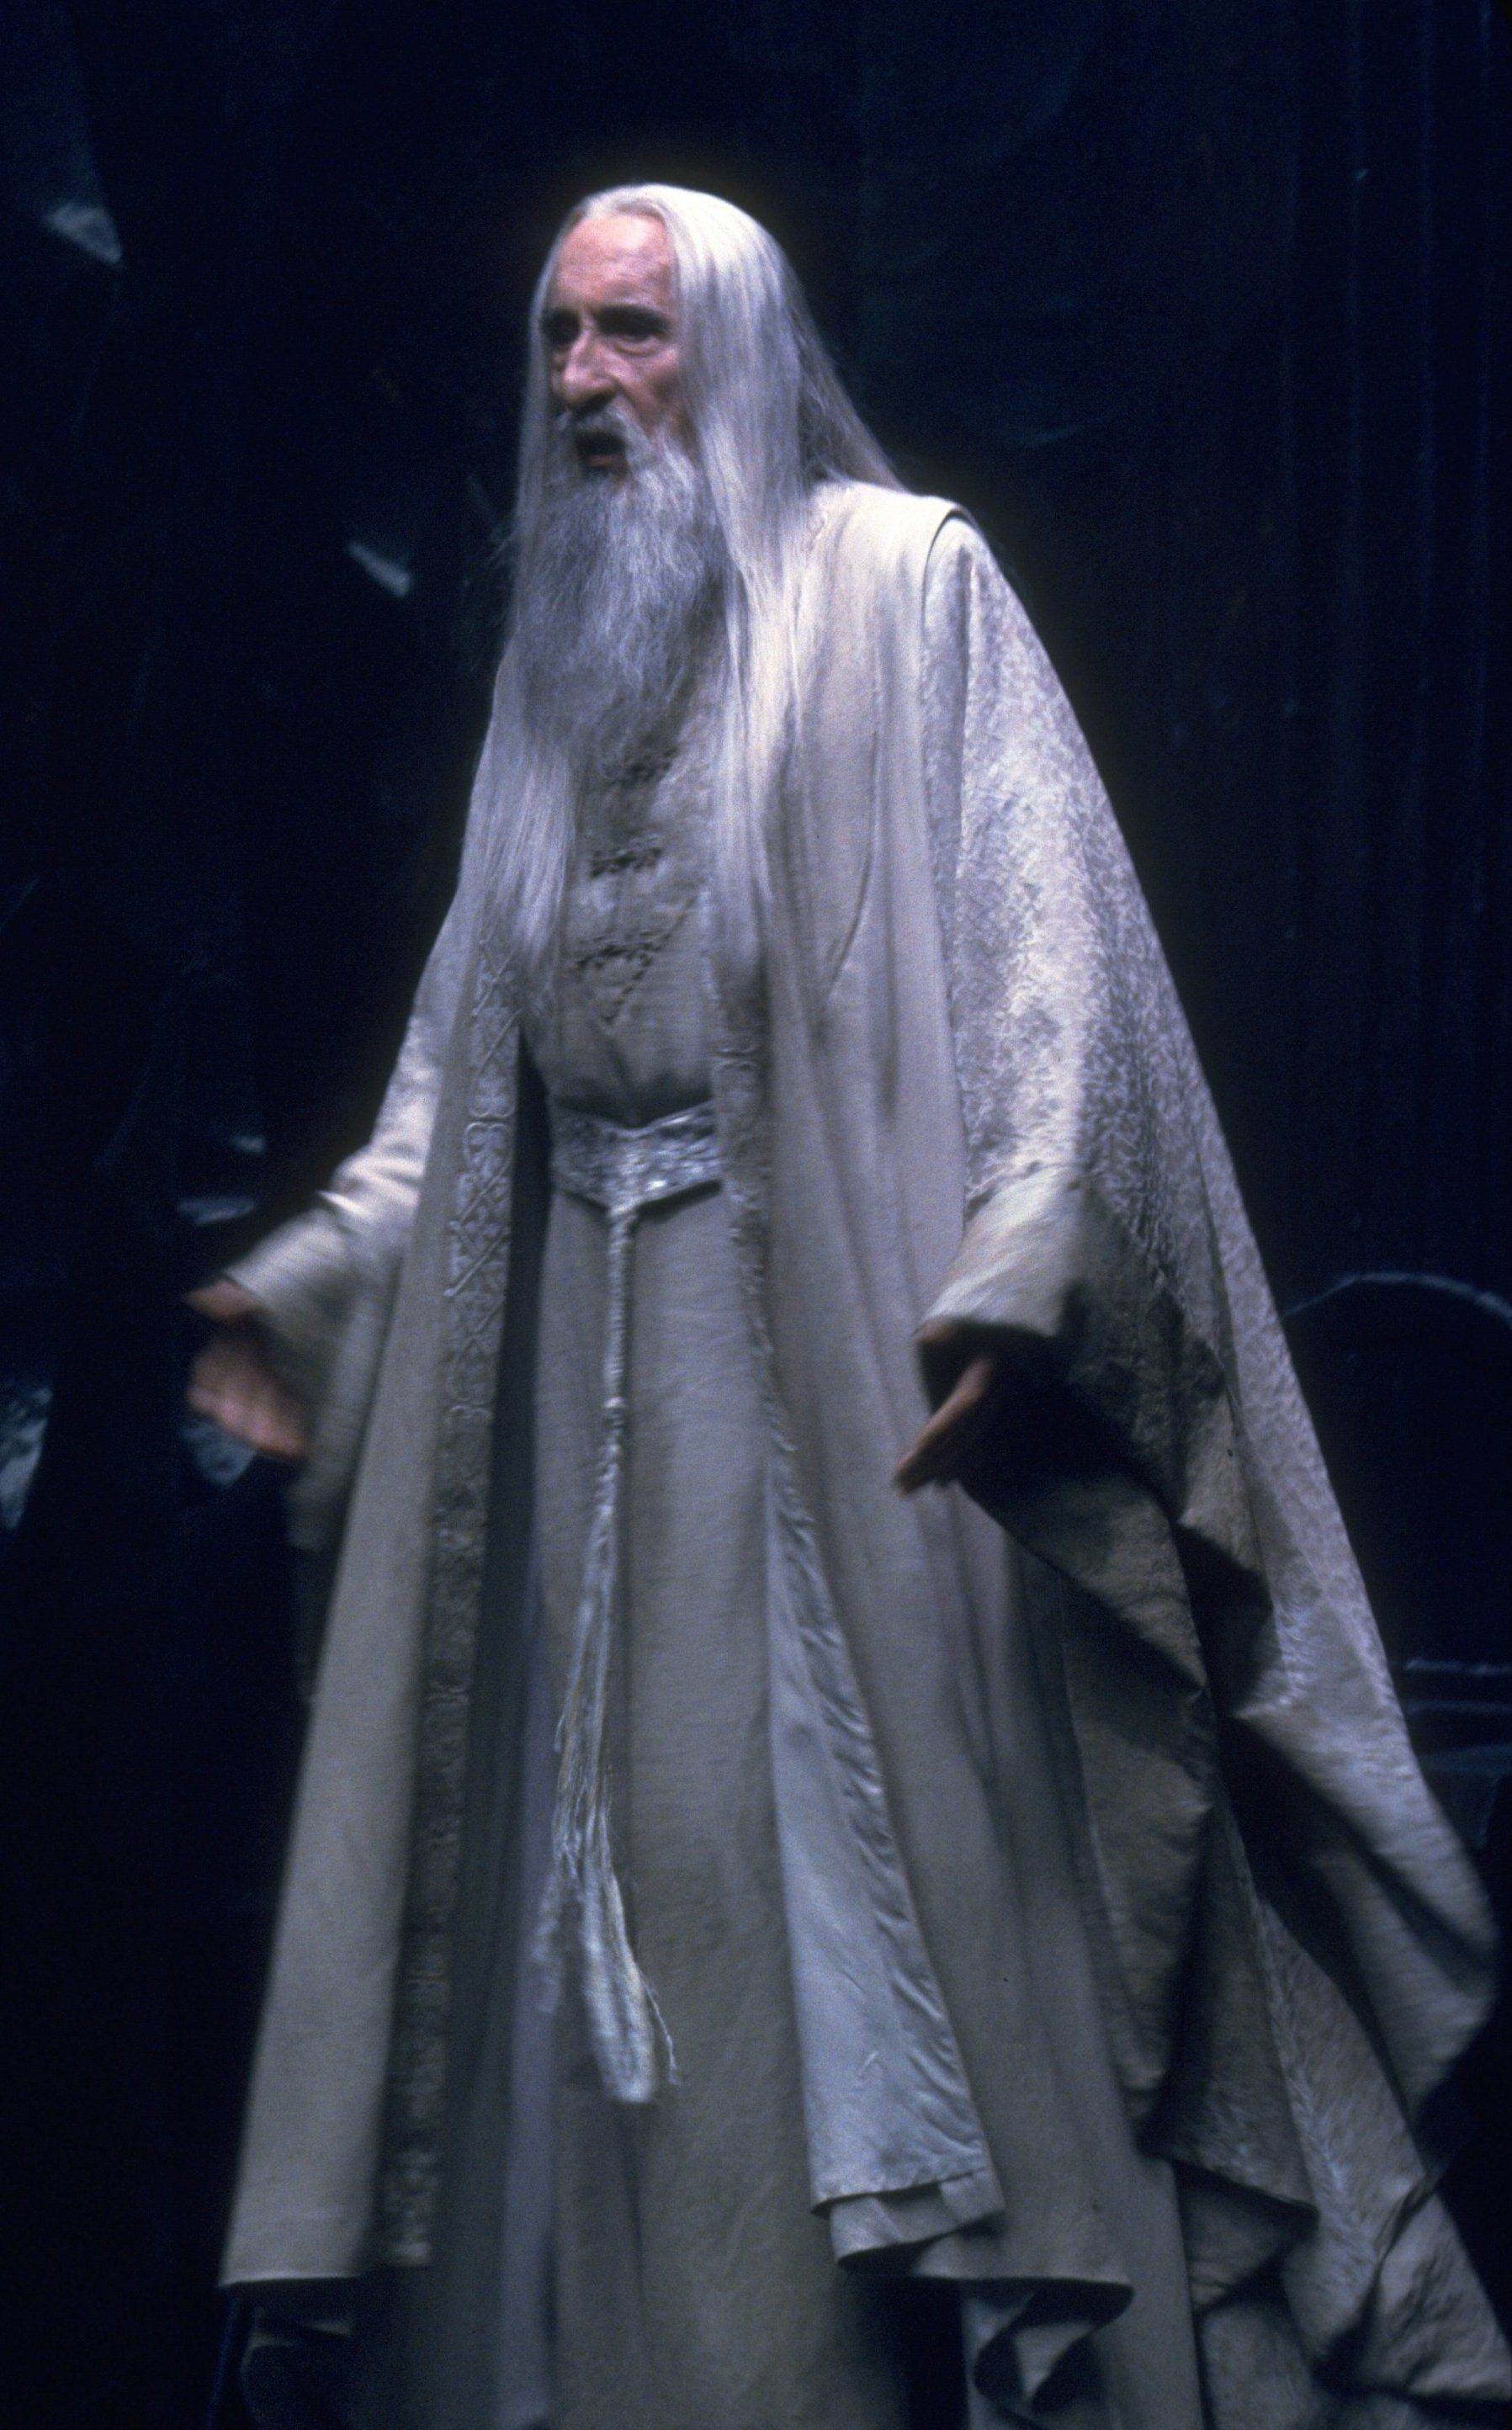 saruman the lord of the rings a journey through middle